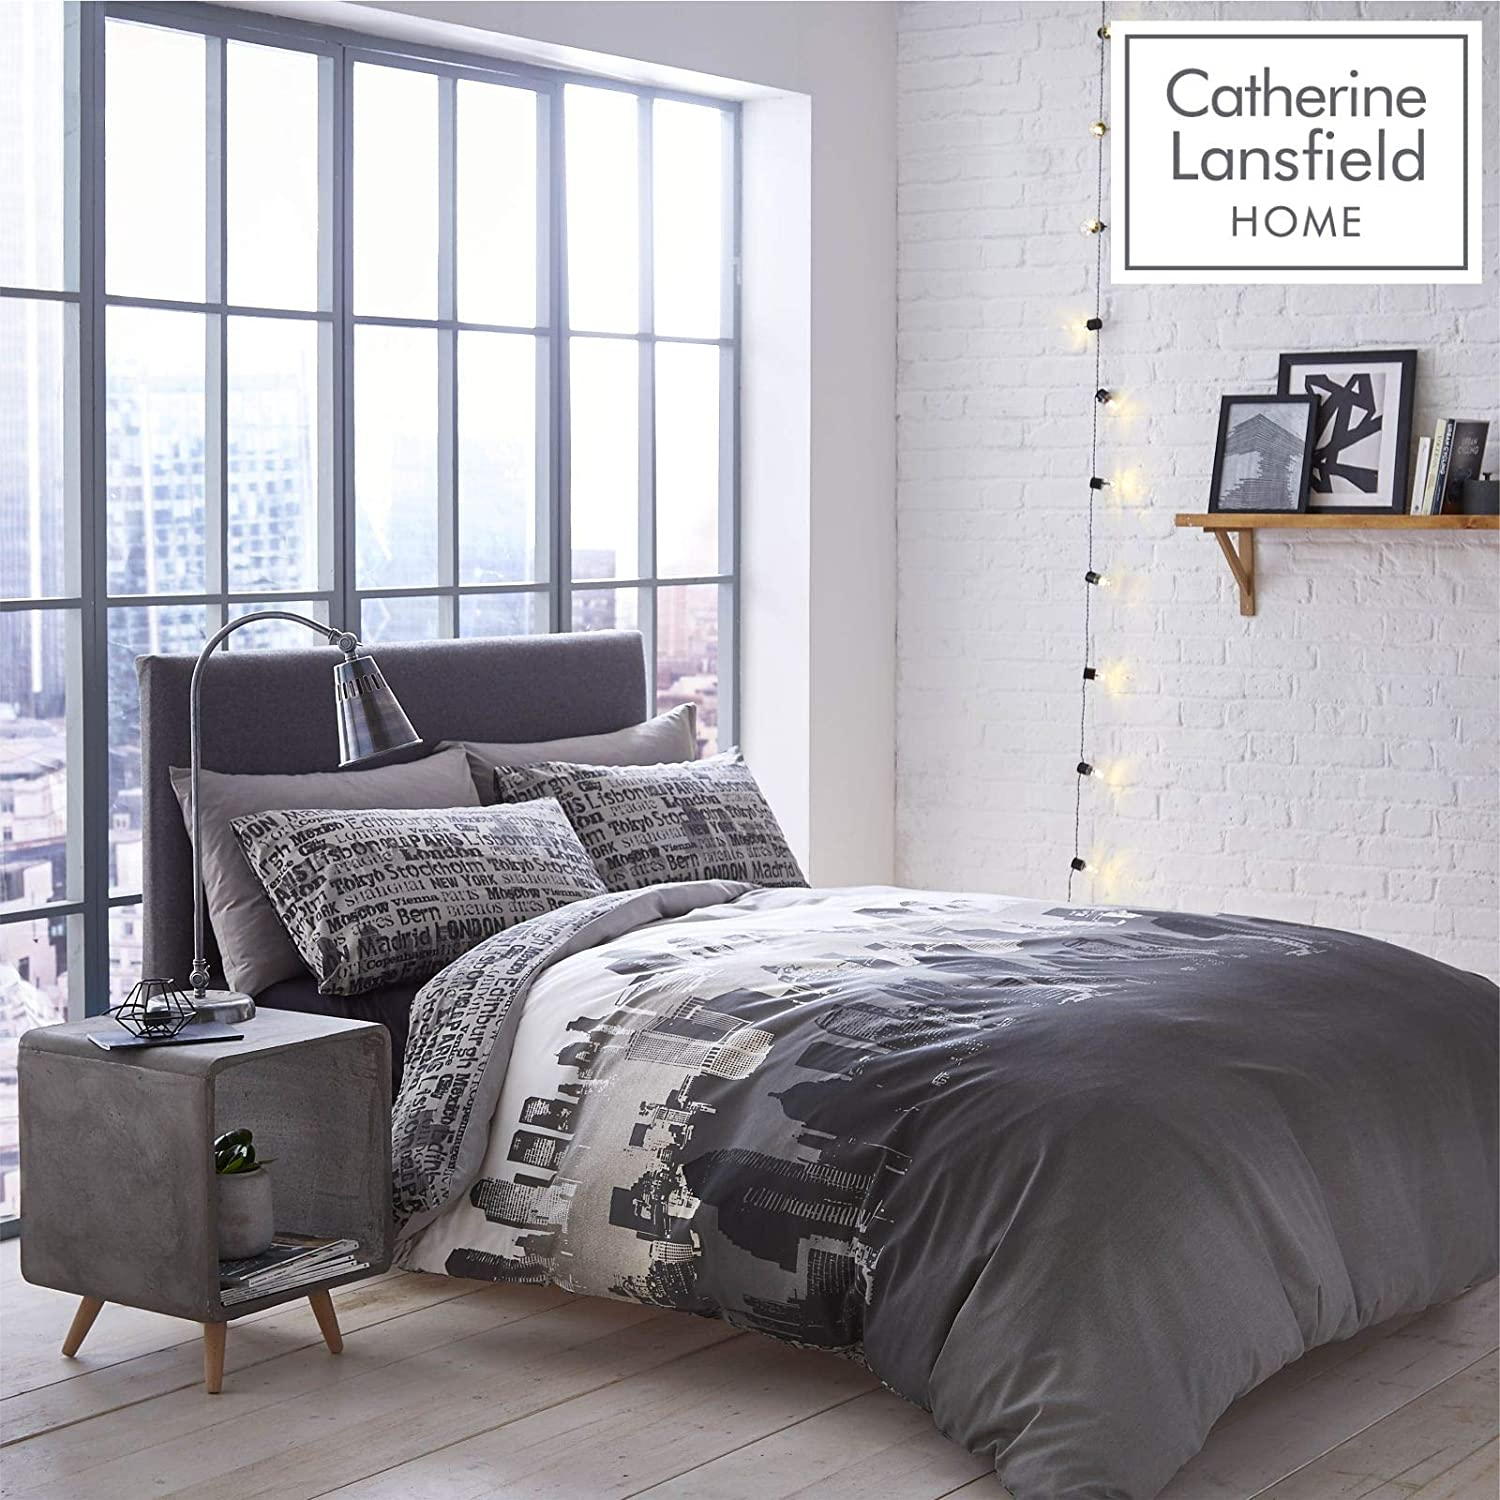 Catherine Lansfield Skyline Urban New York City Scape King Duvet Cover Set Grey